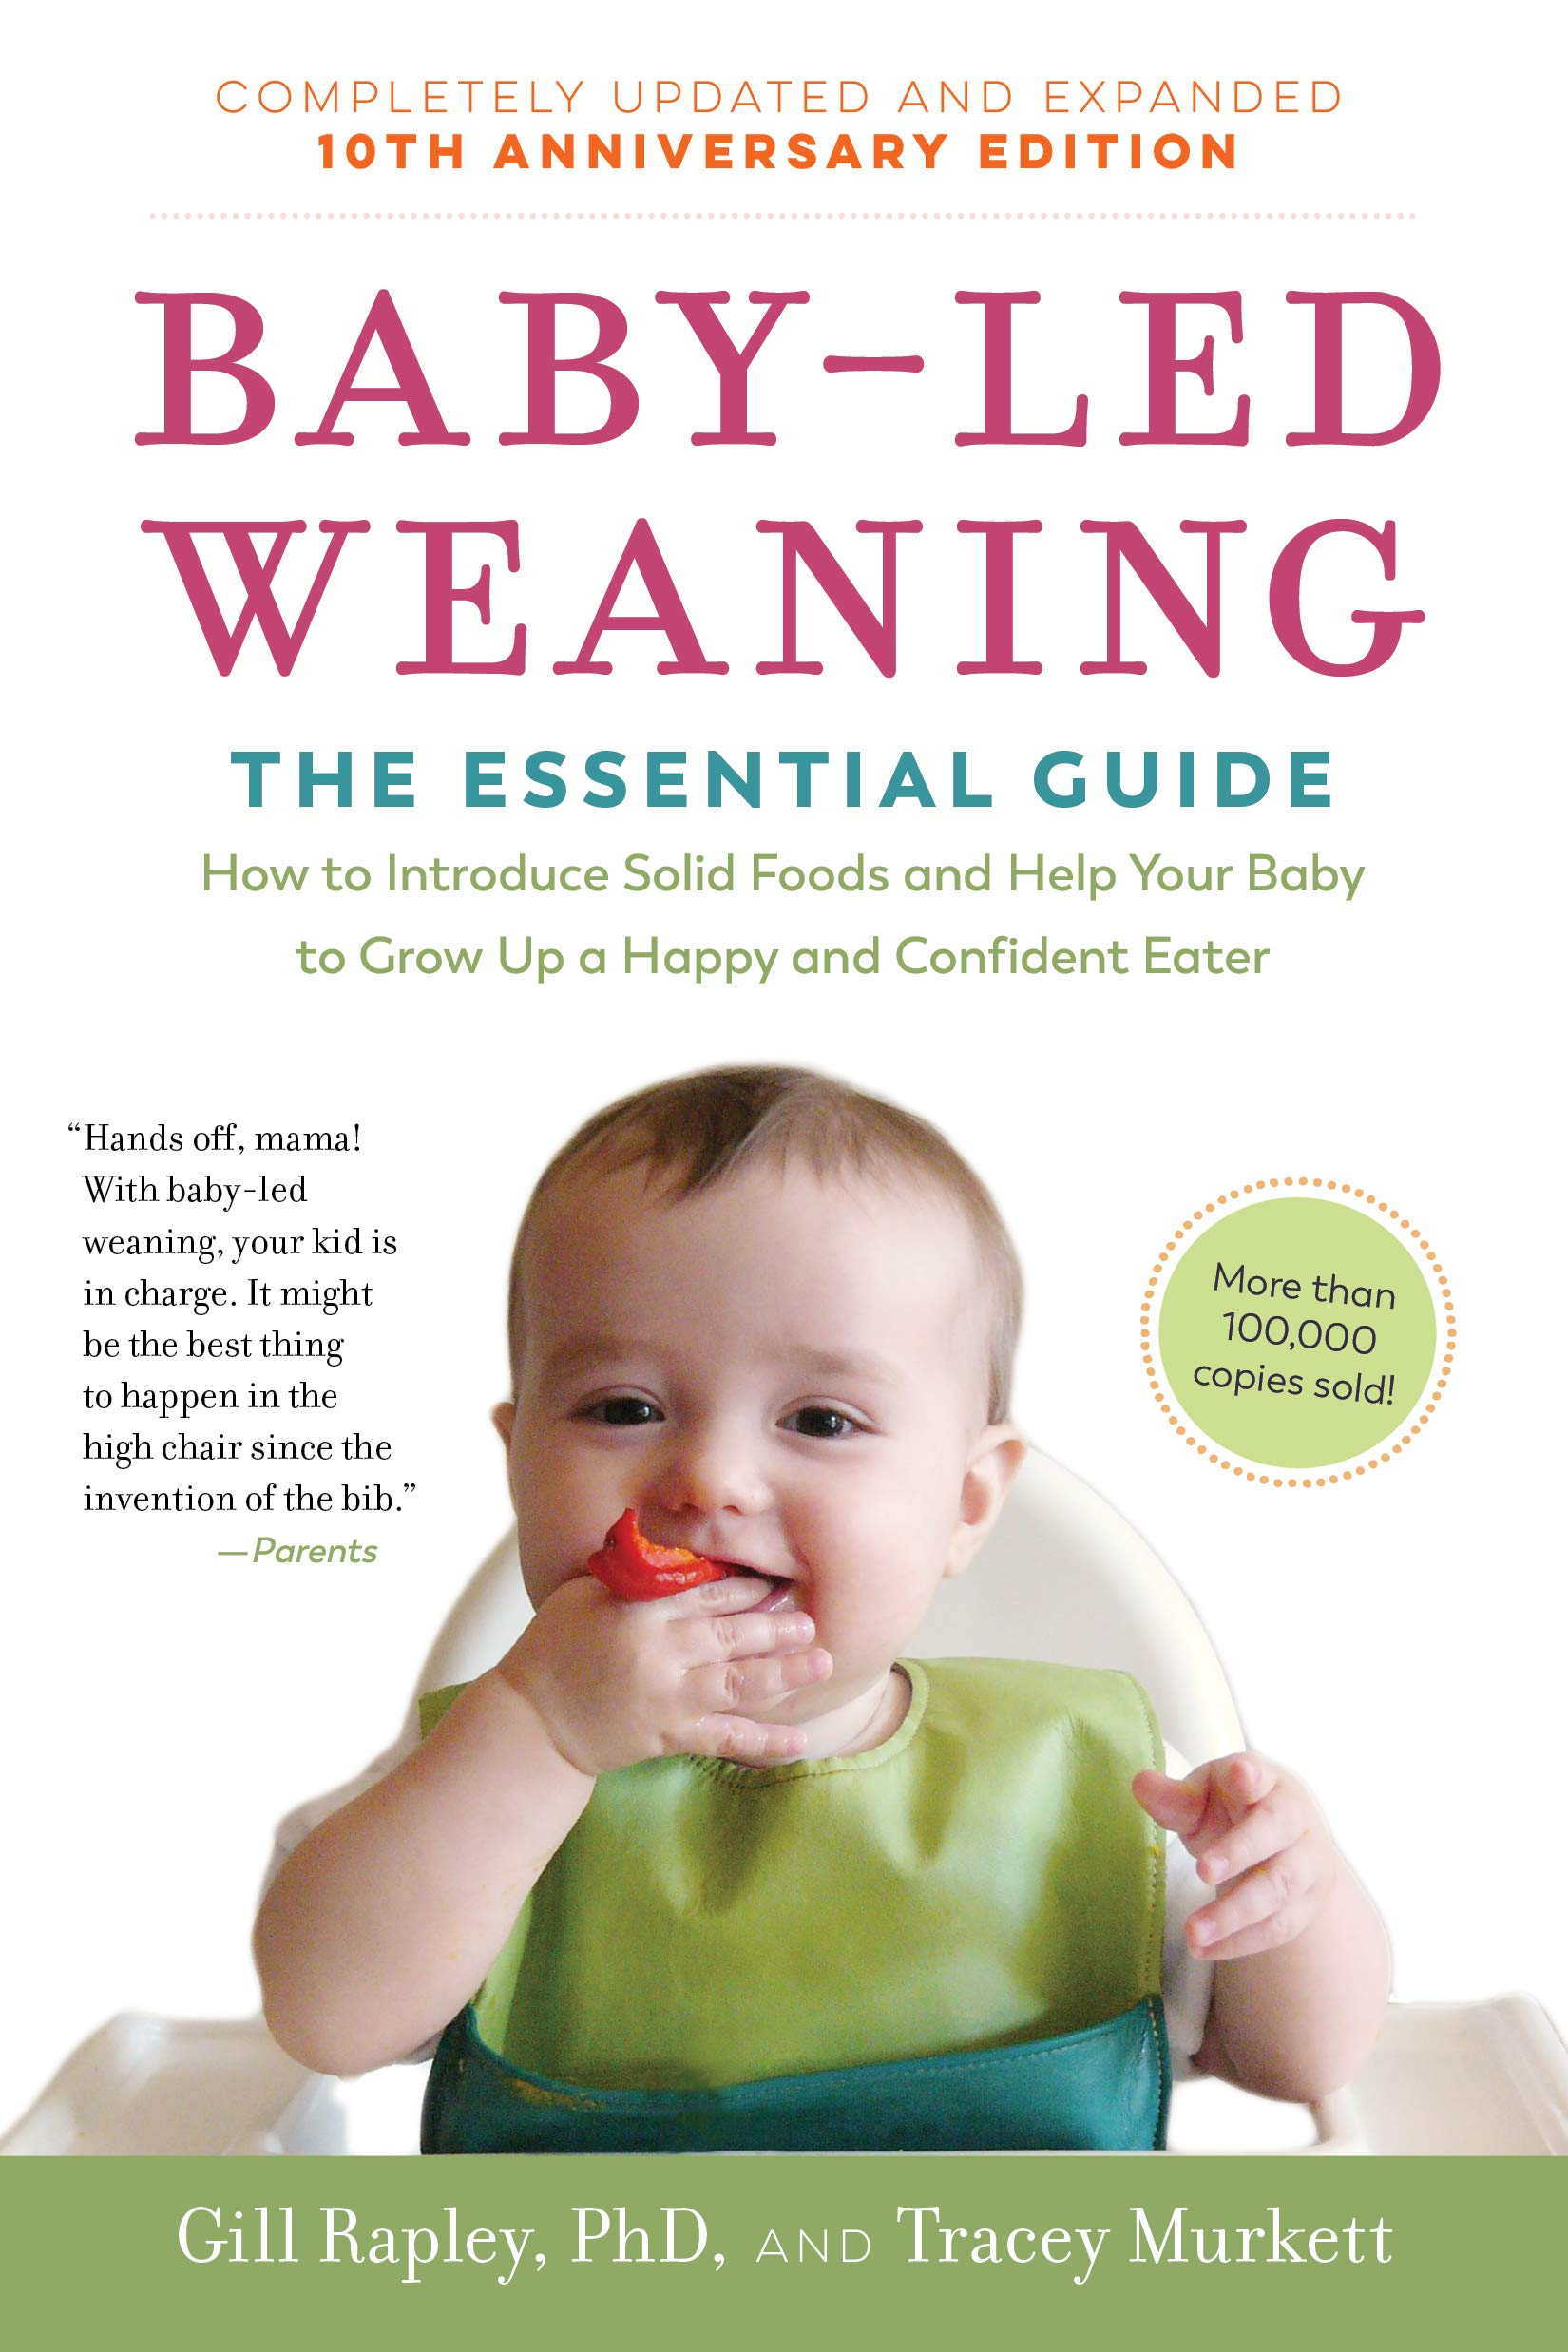 Baby-Led Weaning The Essential Guide